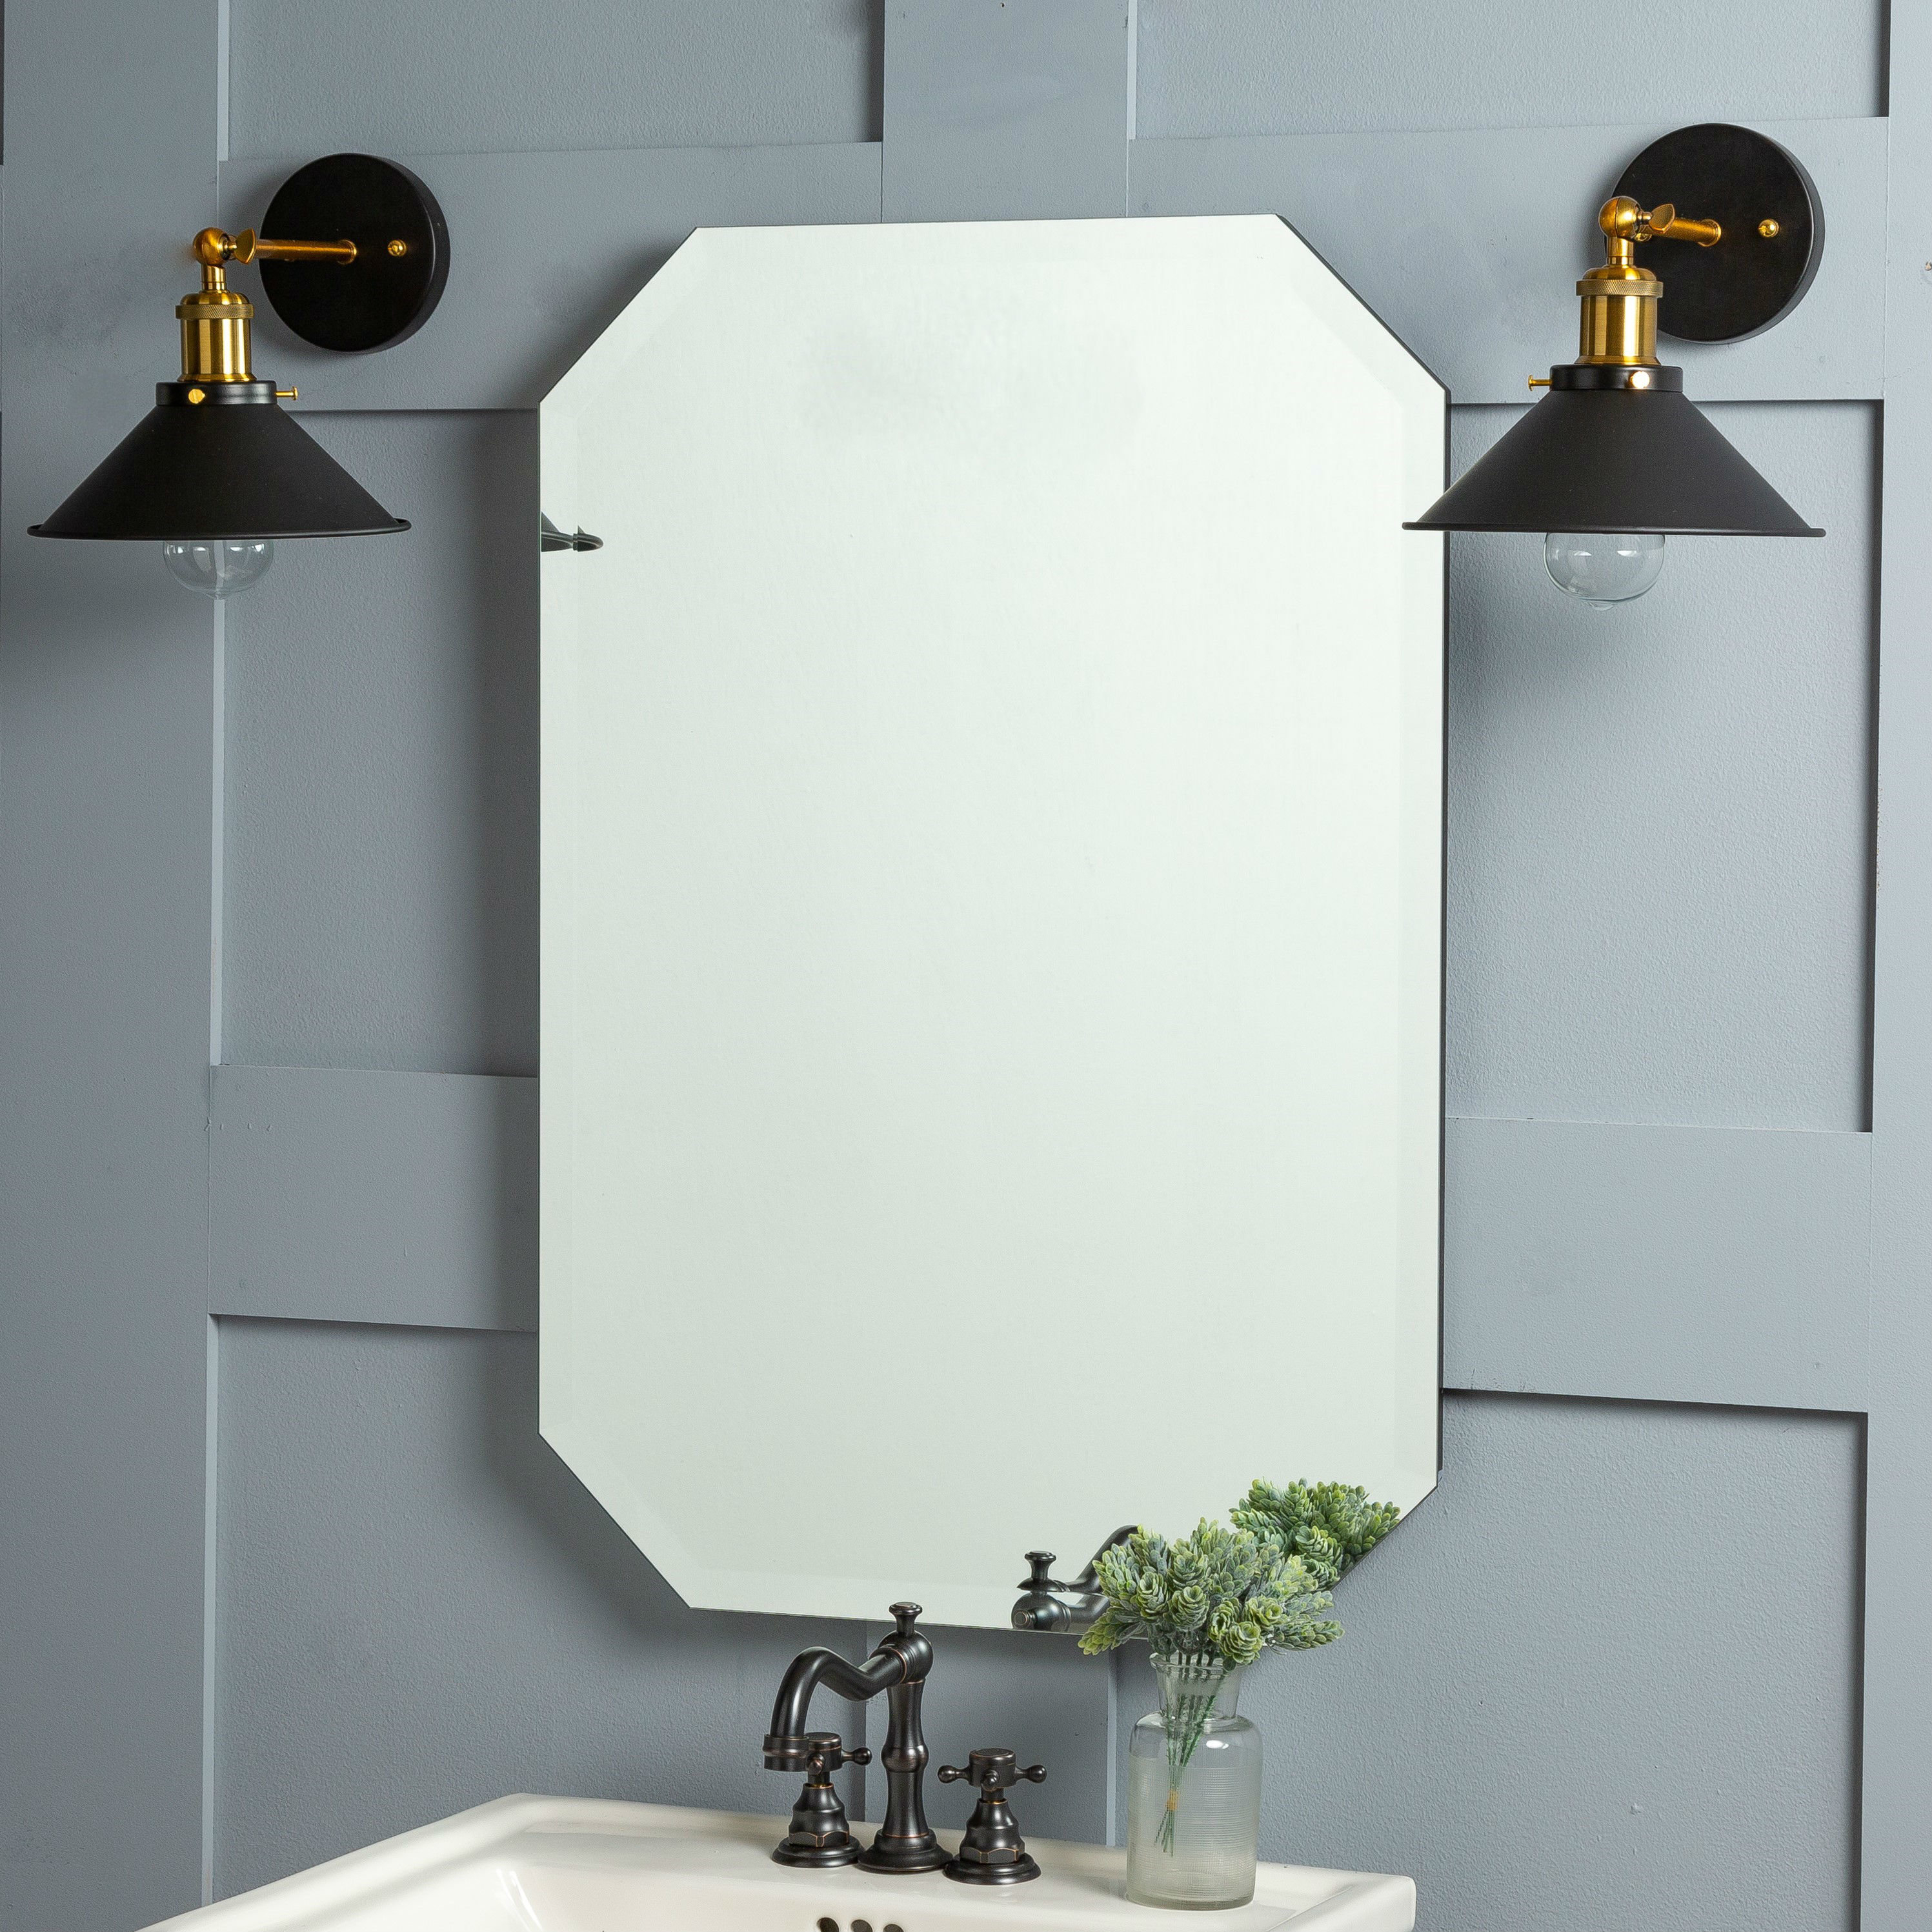 Frameless Wall Mirrors | Joss & Main With Kayden Accent Mirrors (View 22 of 30)